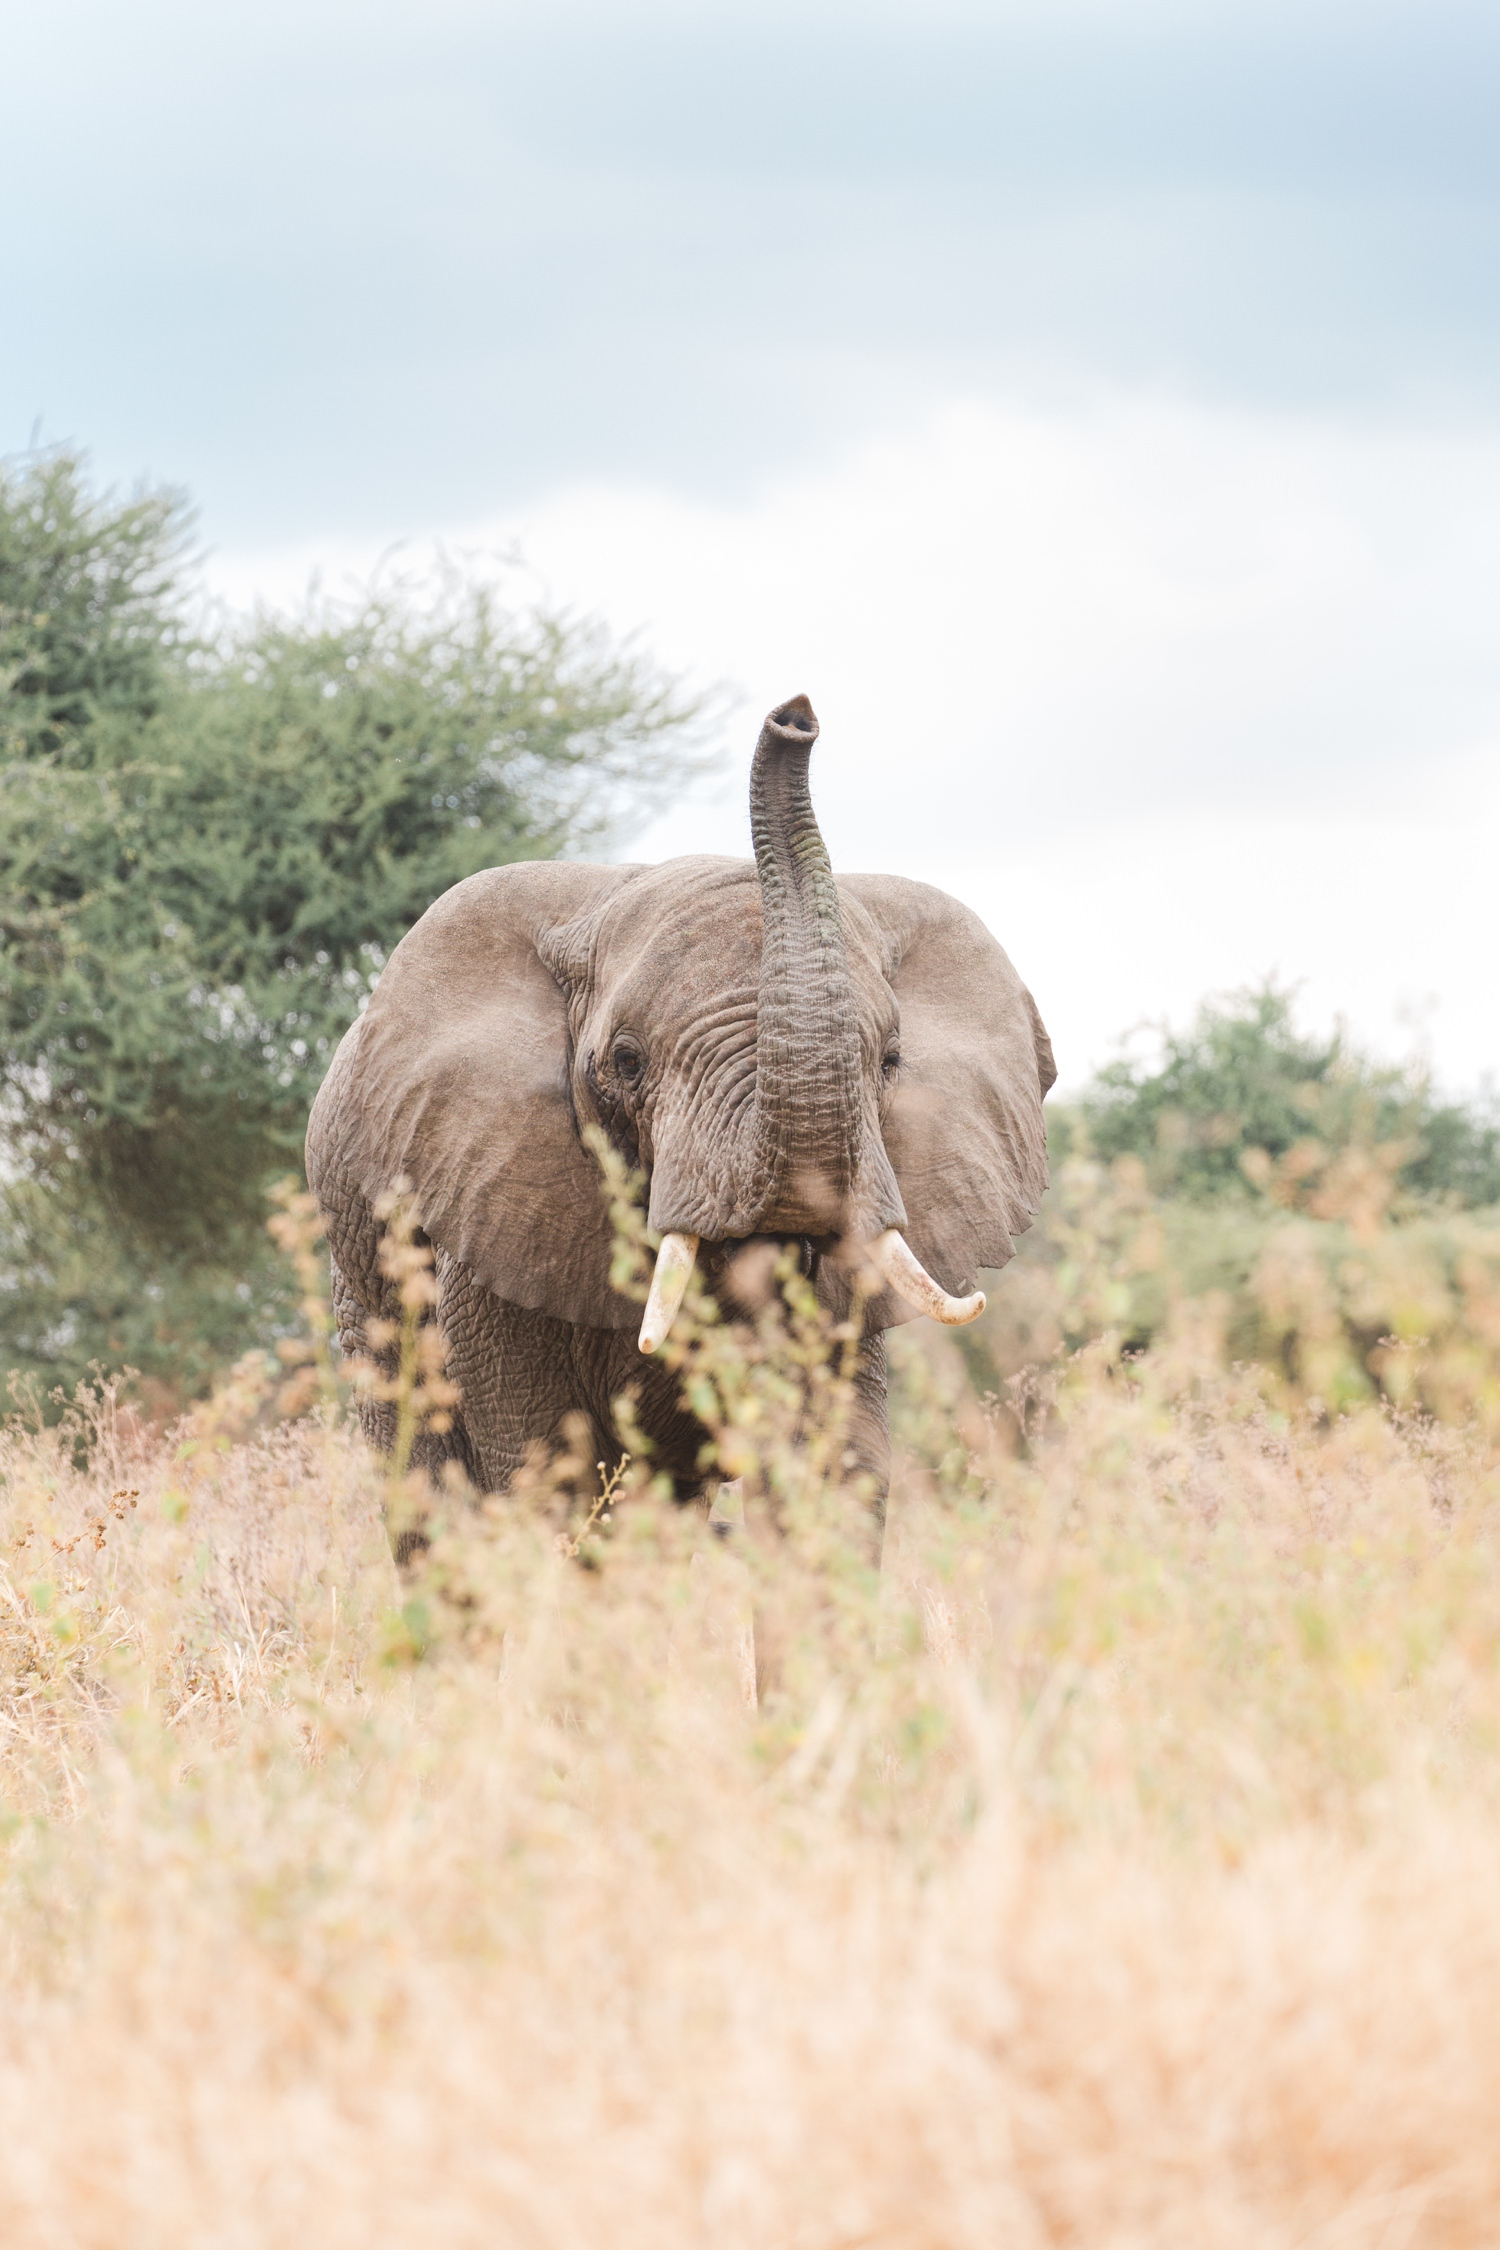 seattle-travel-photographer-tanzania-elephant-national-geographic-expeditions.jpg